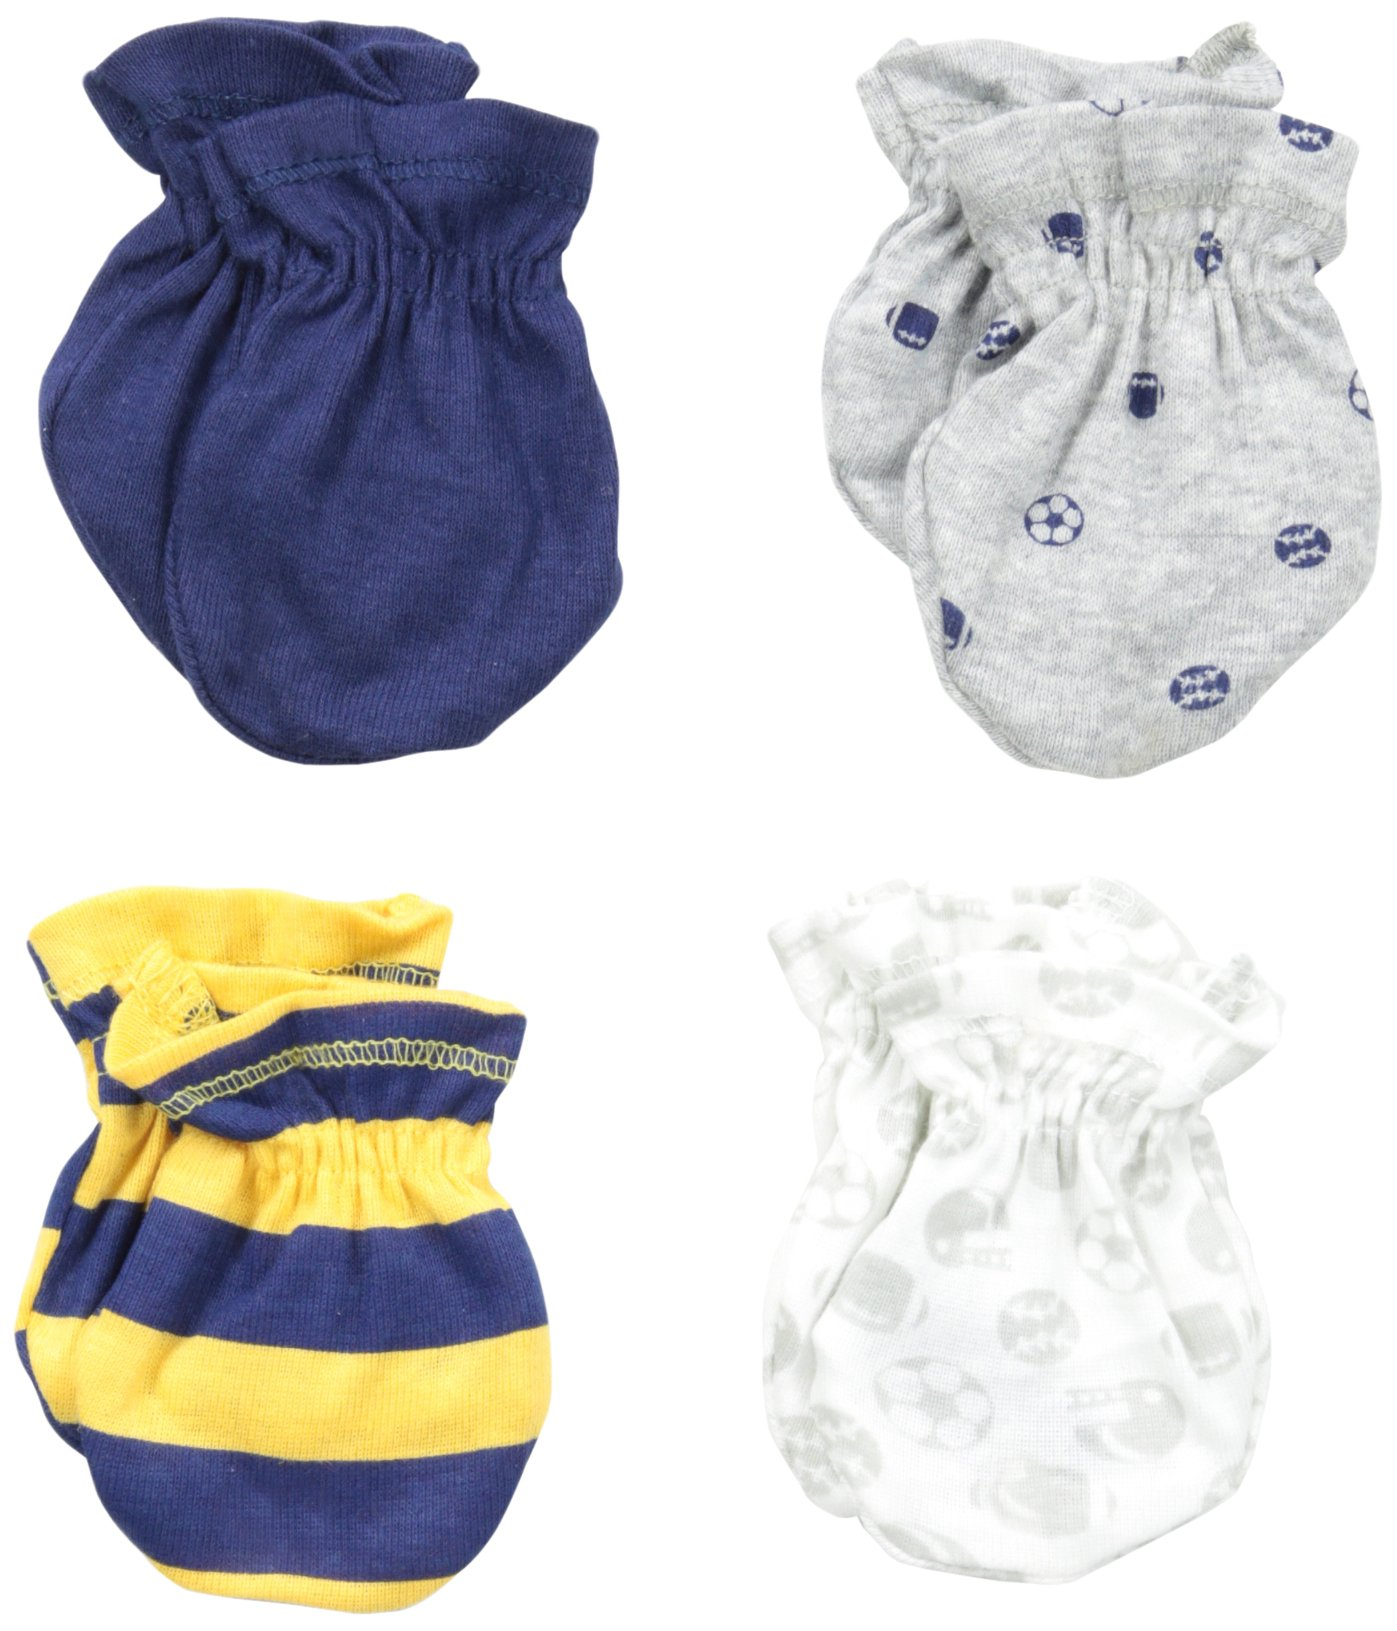 Newborn Baby Items for Boy: Amazon.com